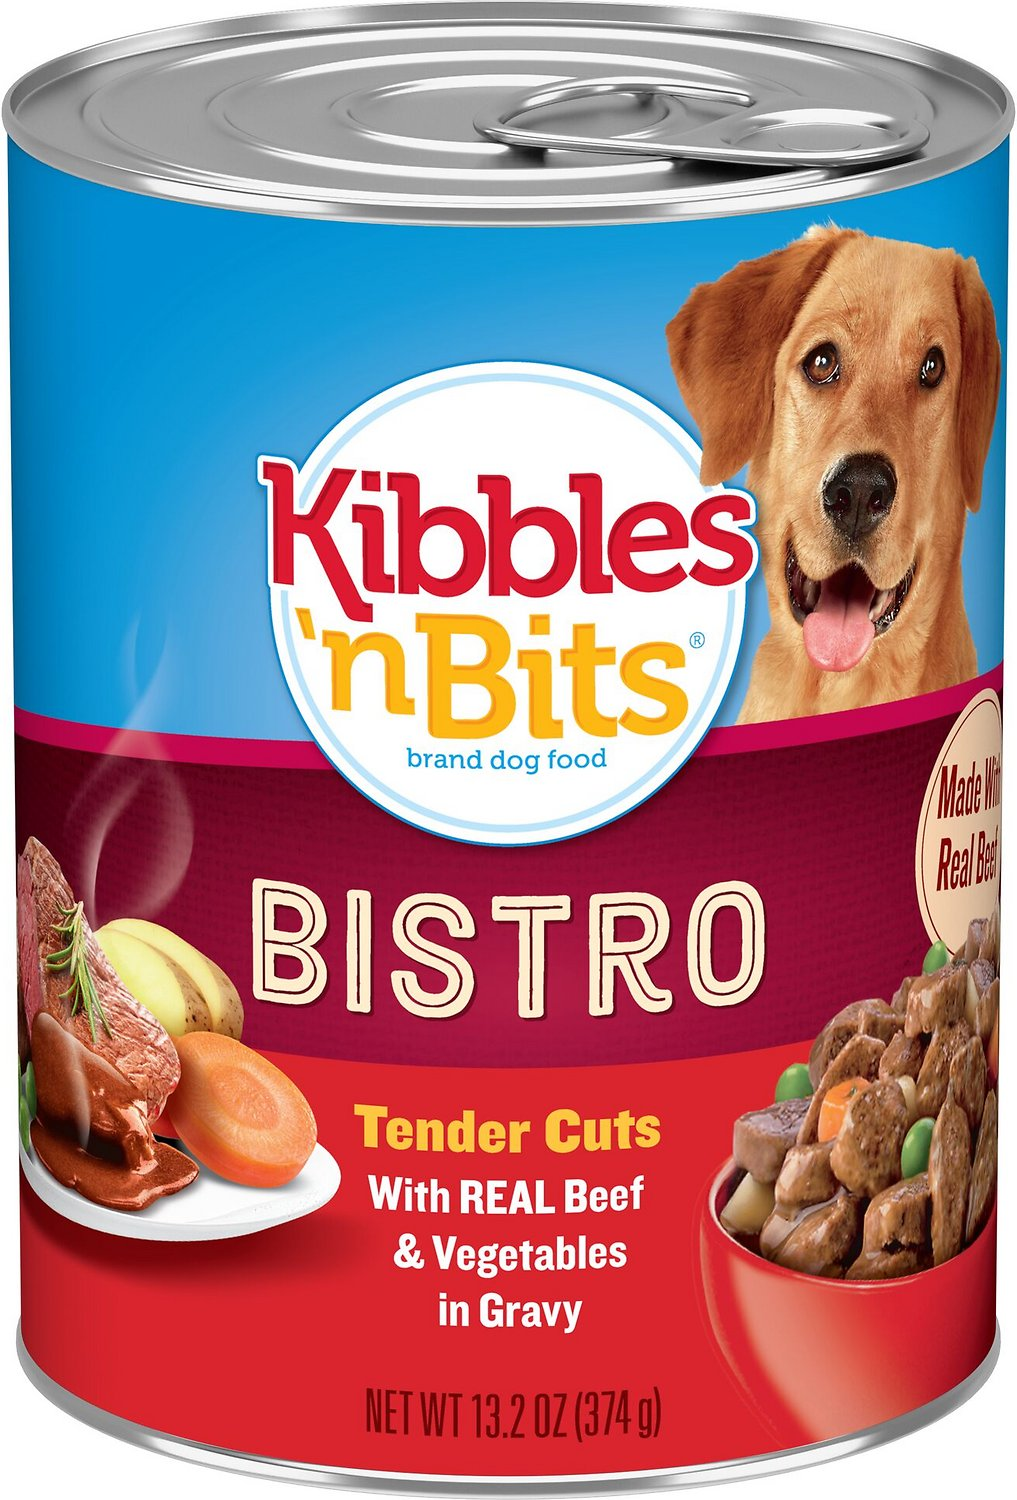 Kibbles And Bits Dog Food Review